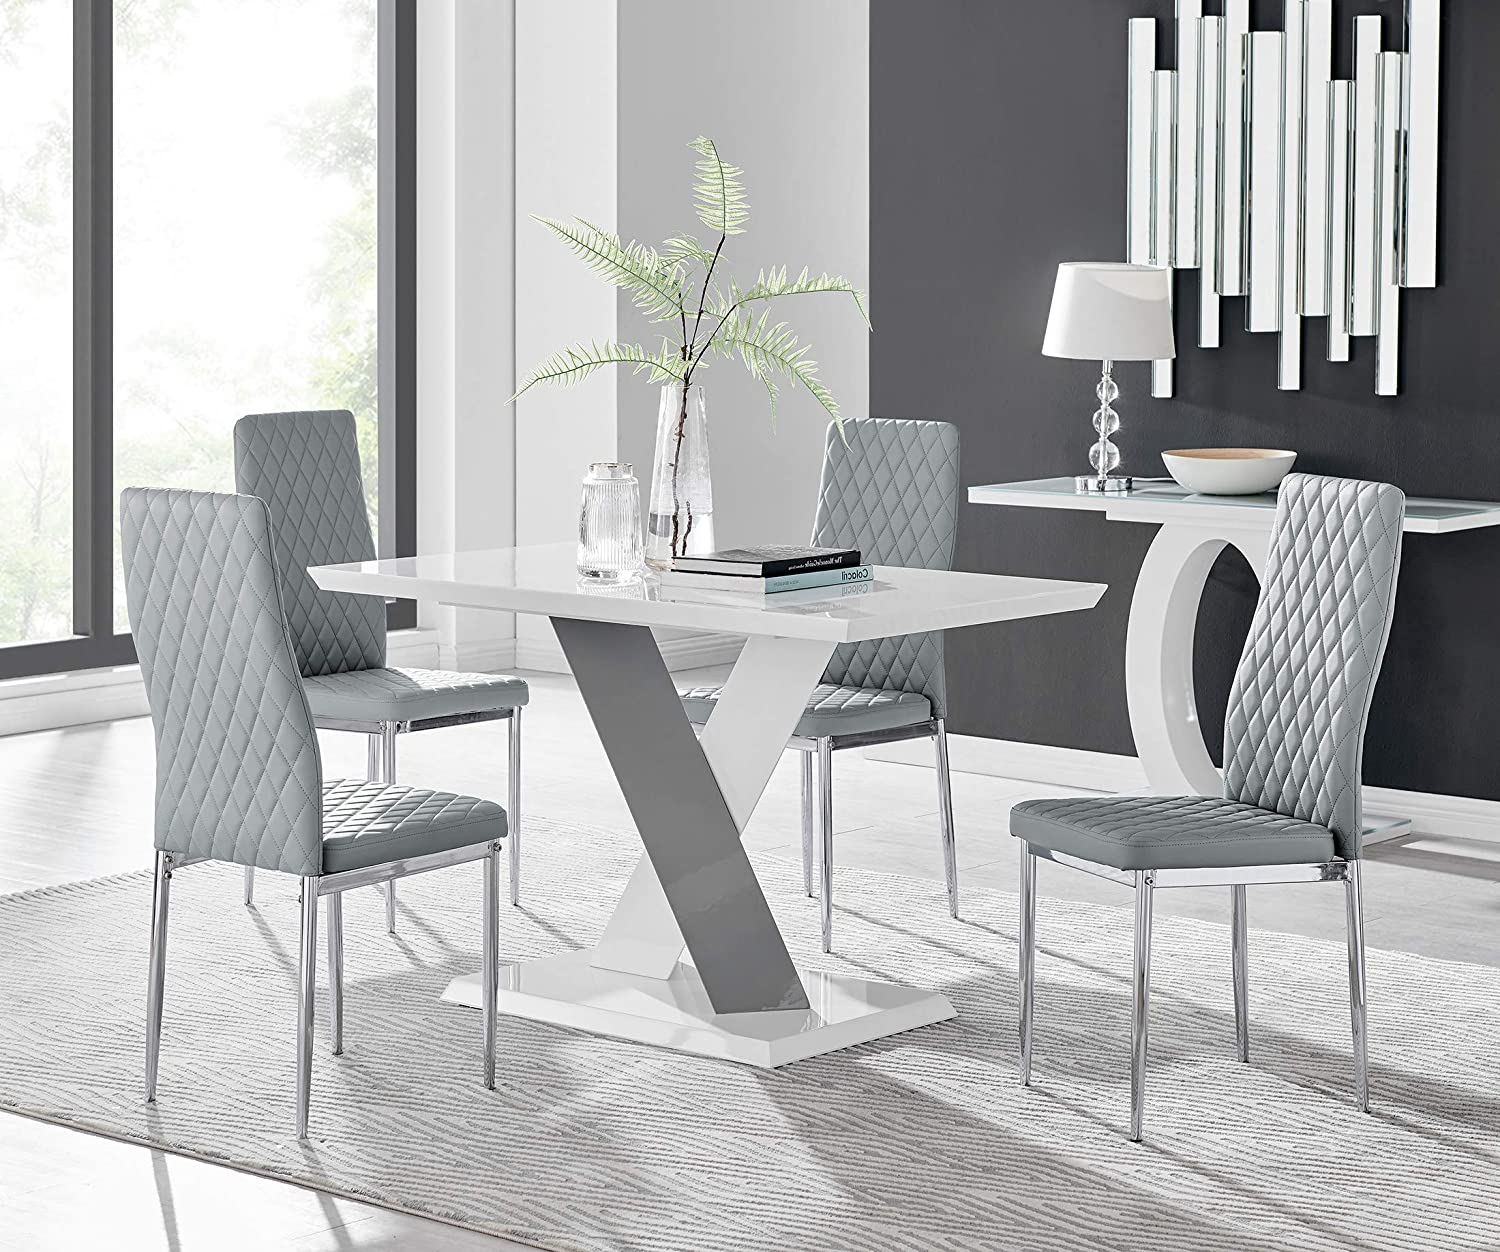 Furniturebox UK Monza 9 Seat White and Grey High Gloss Rectangular Dining  Table Modern Contemporary Table Design with 9 Grey Milan Faux Leather  Dining ...